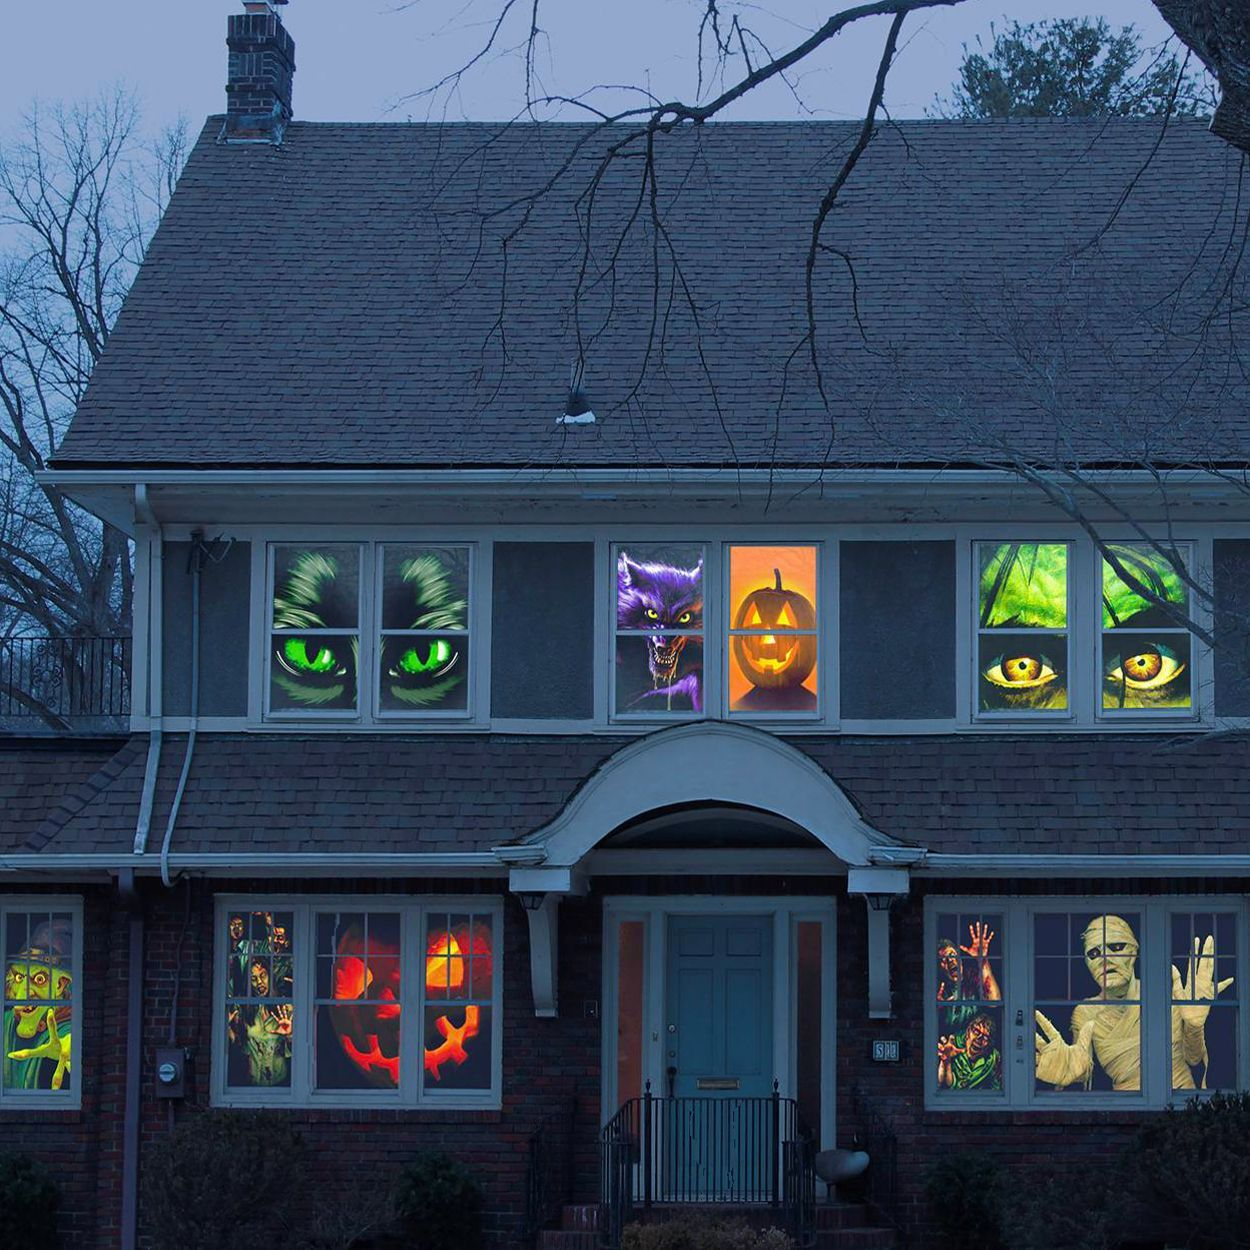 explore halloween window decorations and more - Halloween Window Decoration